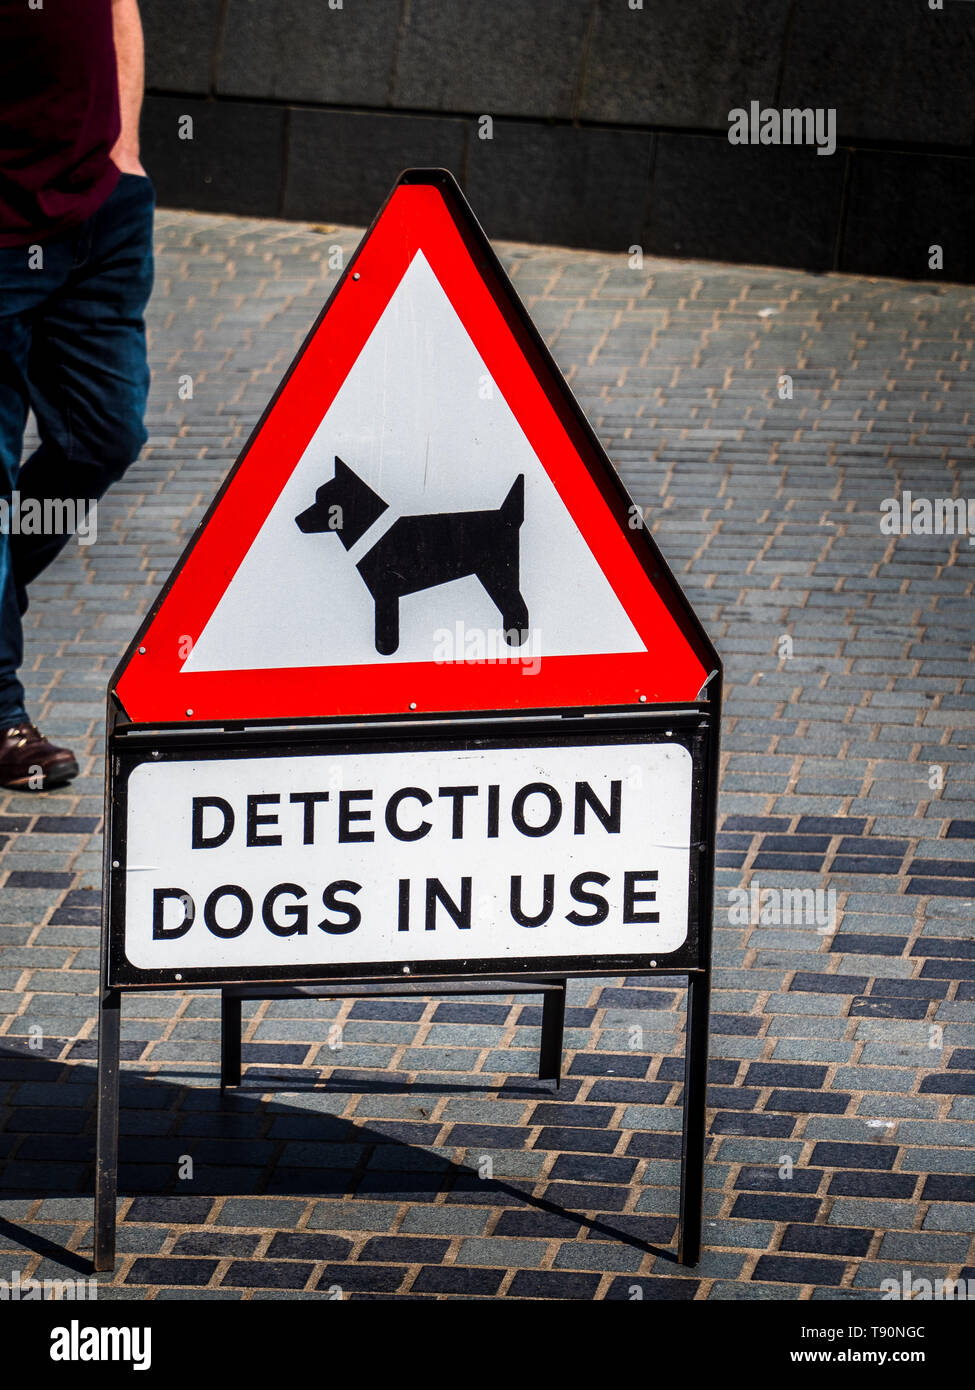 Detection Dogs in Use Sign - warning about the use of dogs trained to use its sense of smell to detect explosives or illegal drugs, - Stock Image